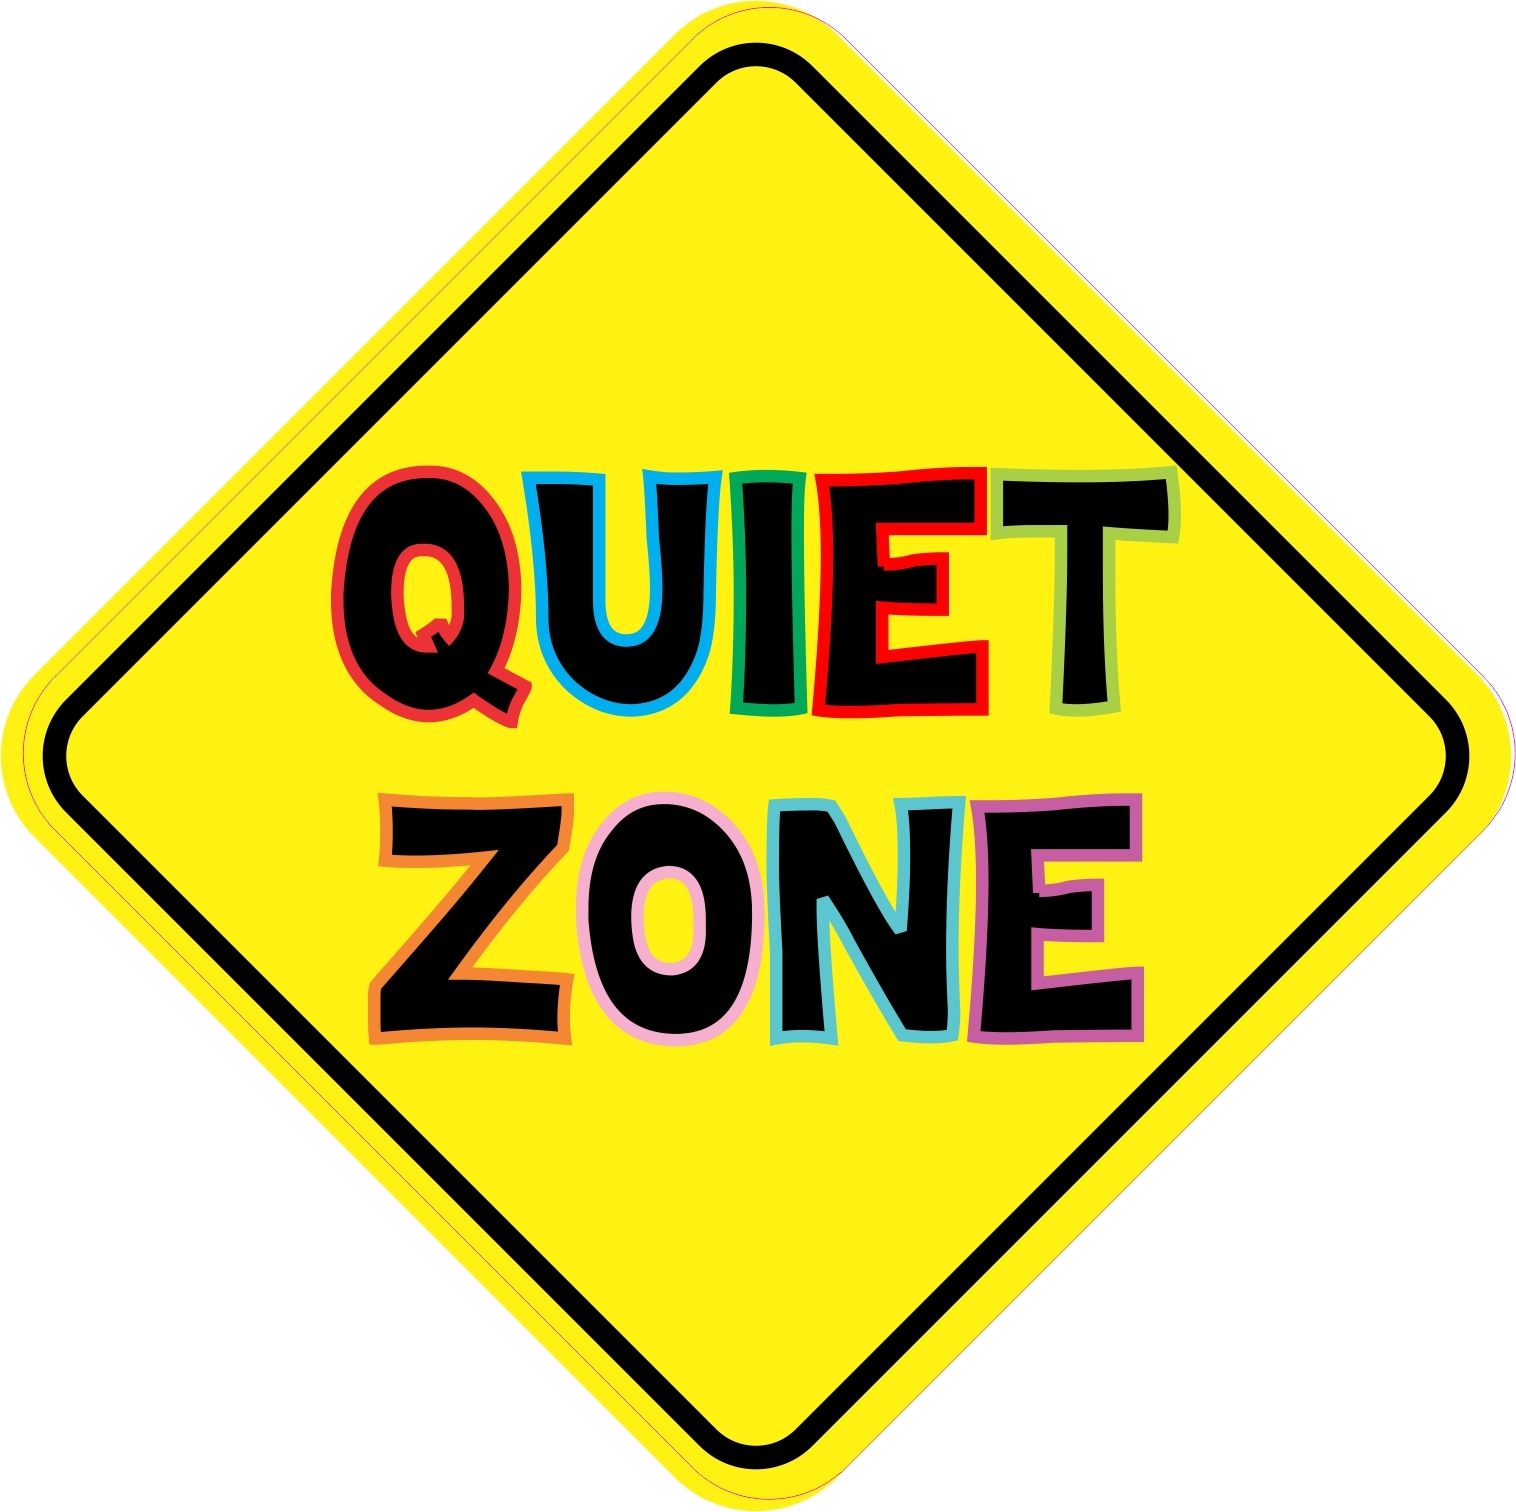 Class room quiet zone clipart black and white clipart Best Quiet Clipart #14251 - Clipartion.com clipart